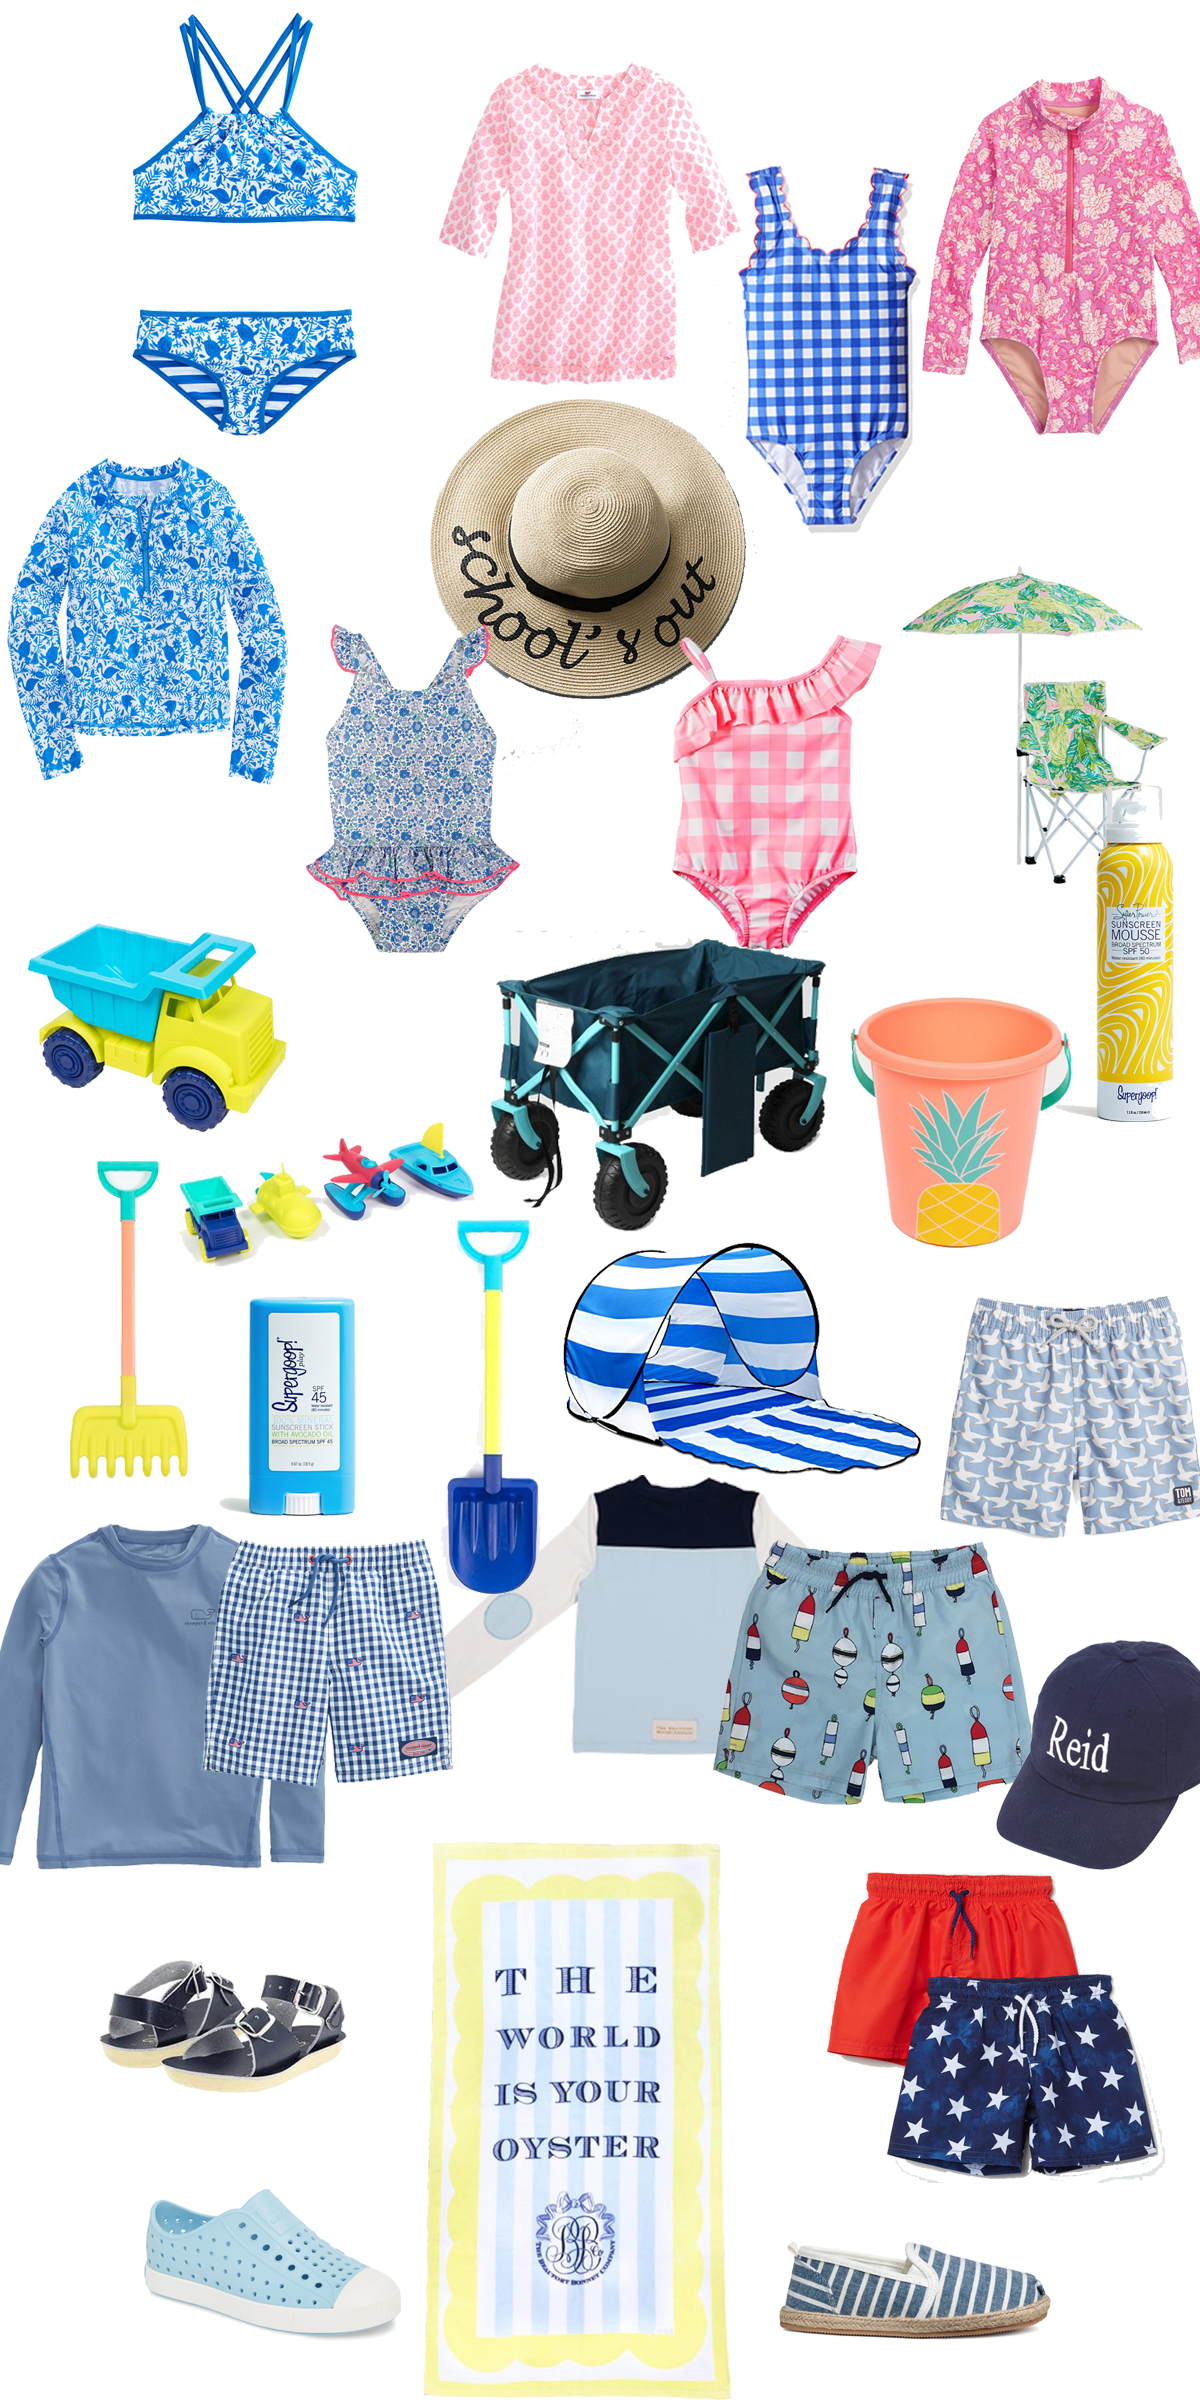 Swimsuit clipart swimming gear. Friday favorites top swim